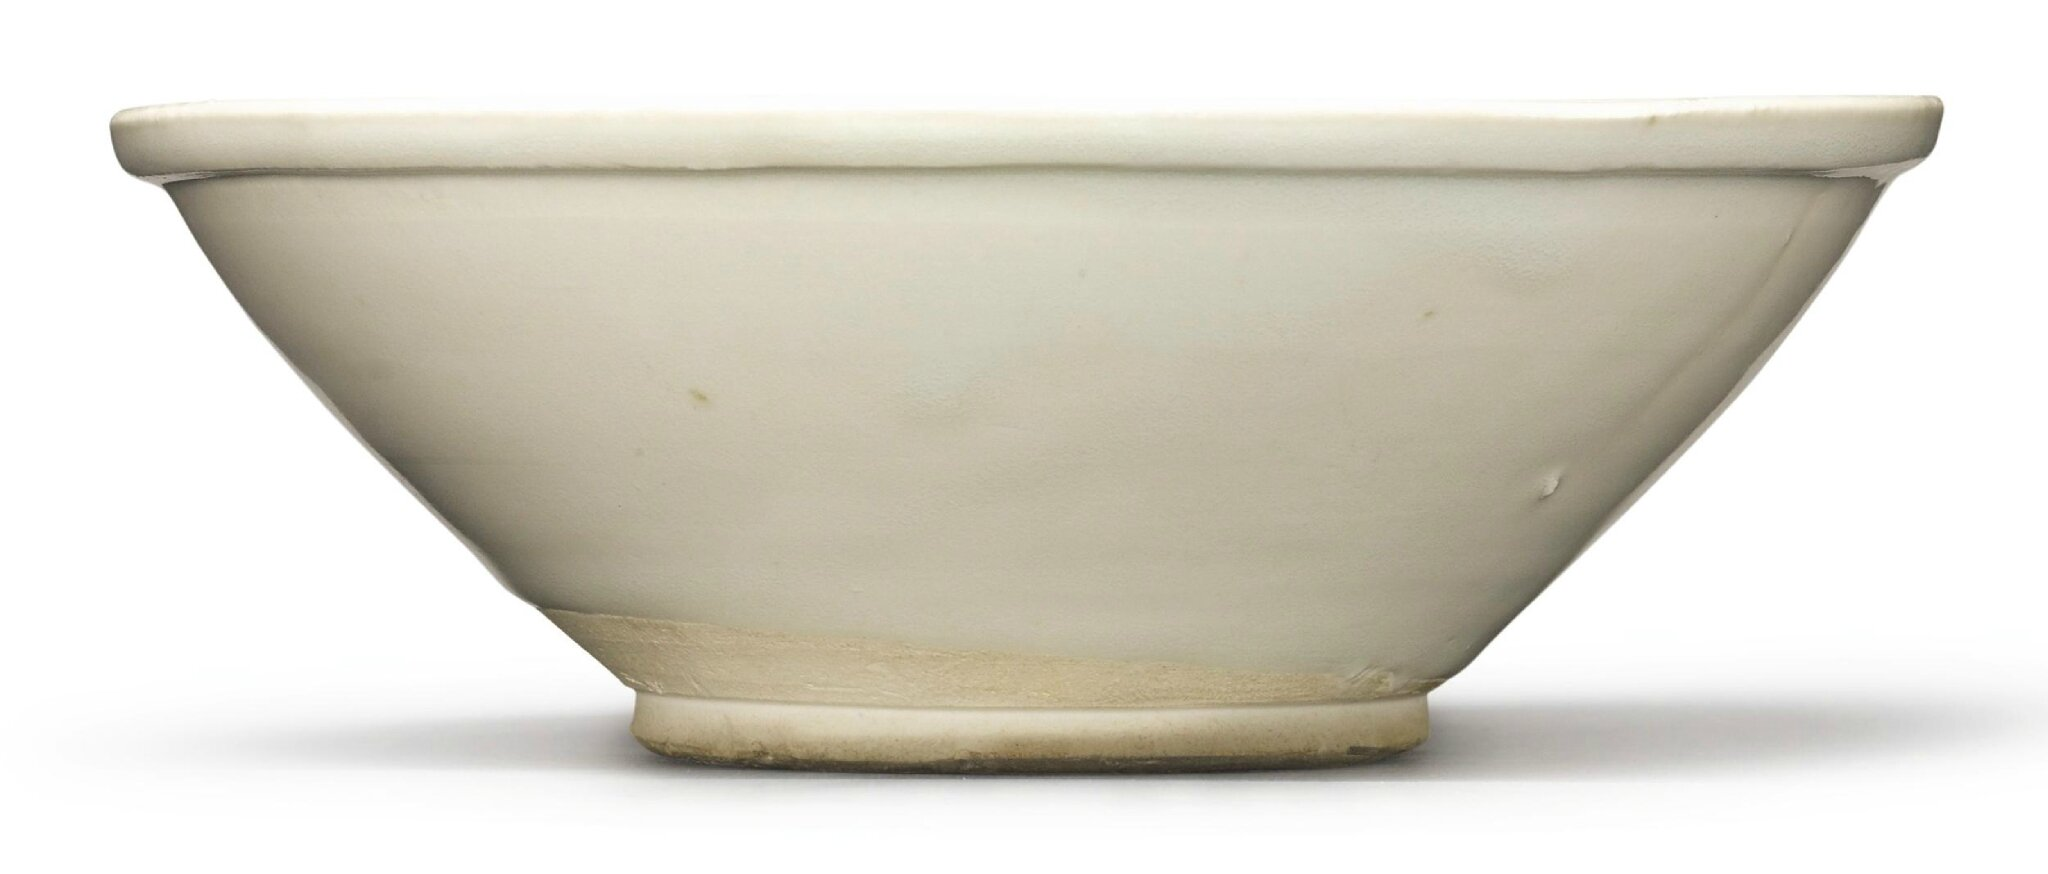 A 'Xing' bowl, Tang dynasty-Five Dynasties, 9th-10th century